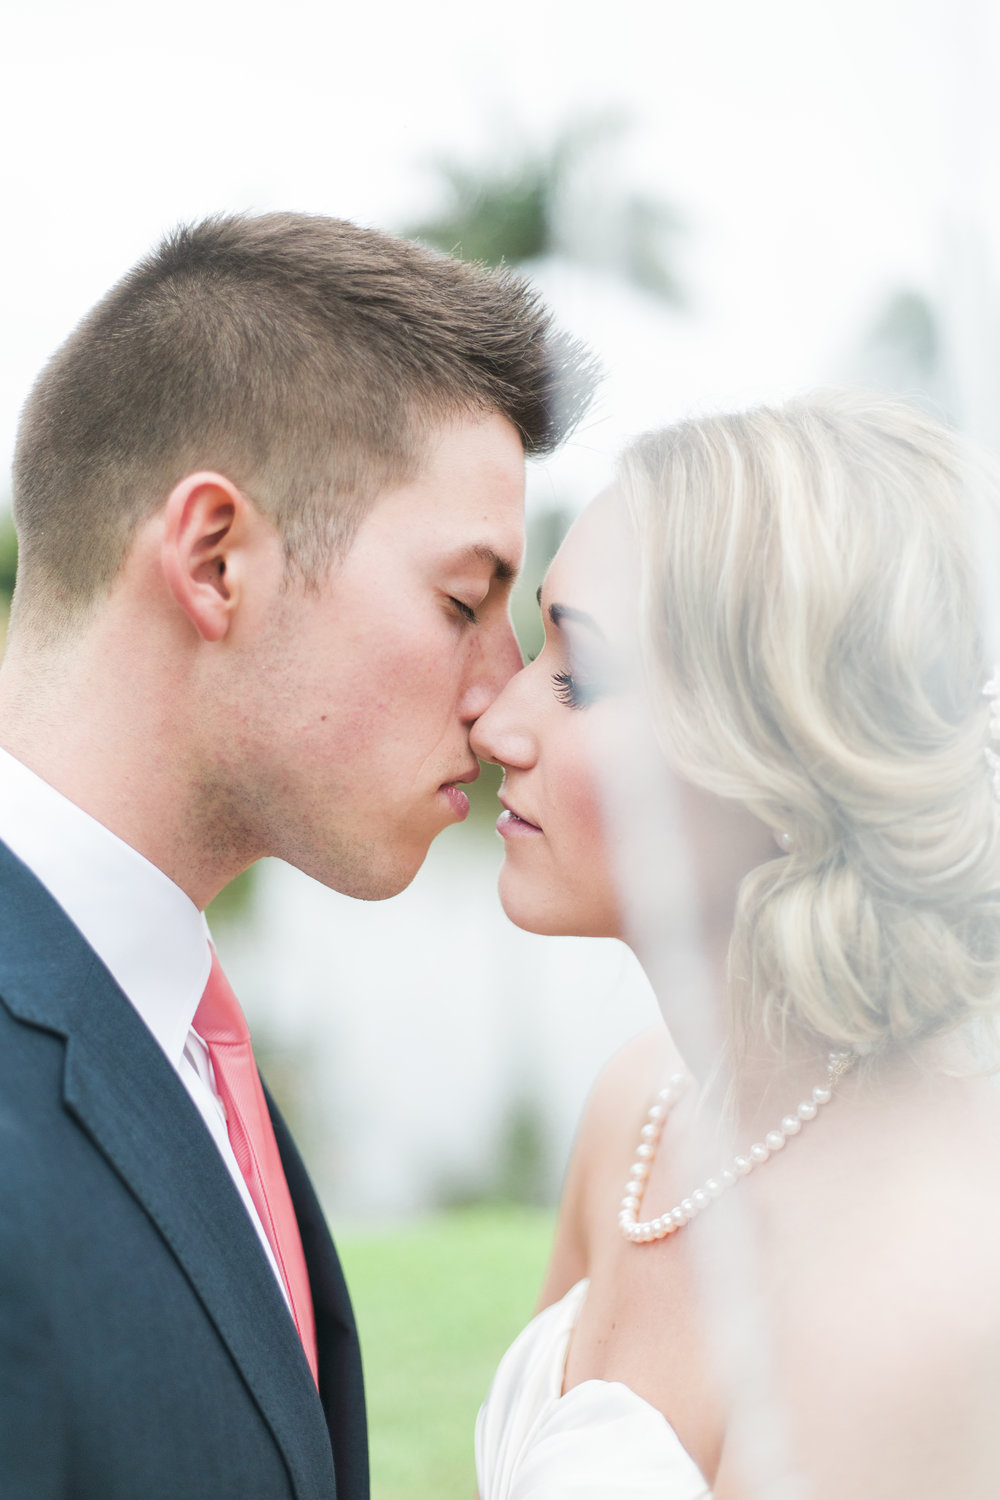 Emily and Trent - Sarasota Wedding Photography - Emily & Co. Photography - Couple's Photos - Destination Wedding Photography (8).jpg